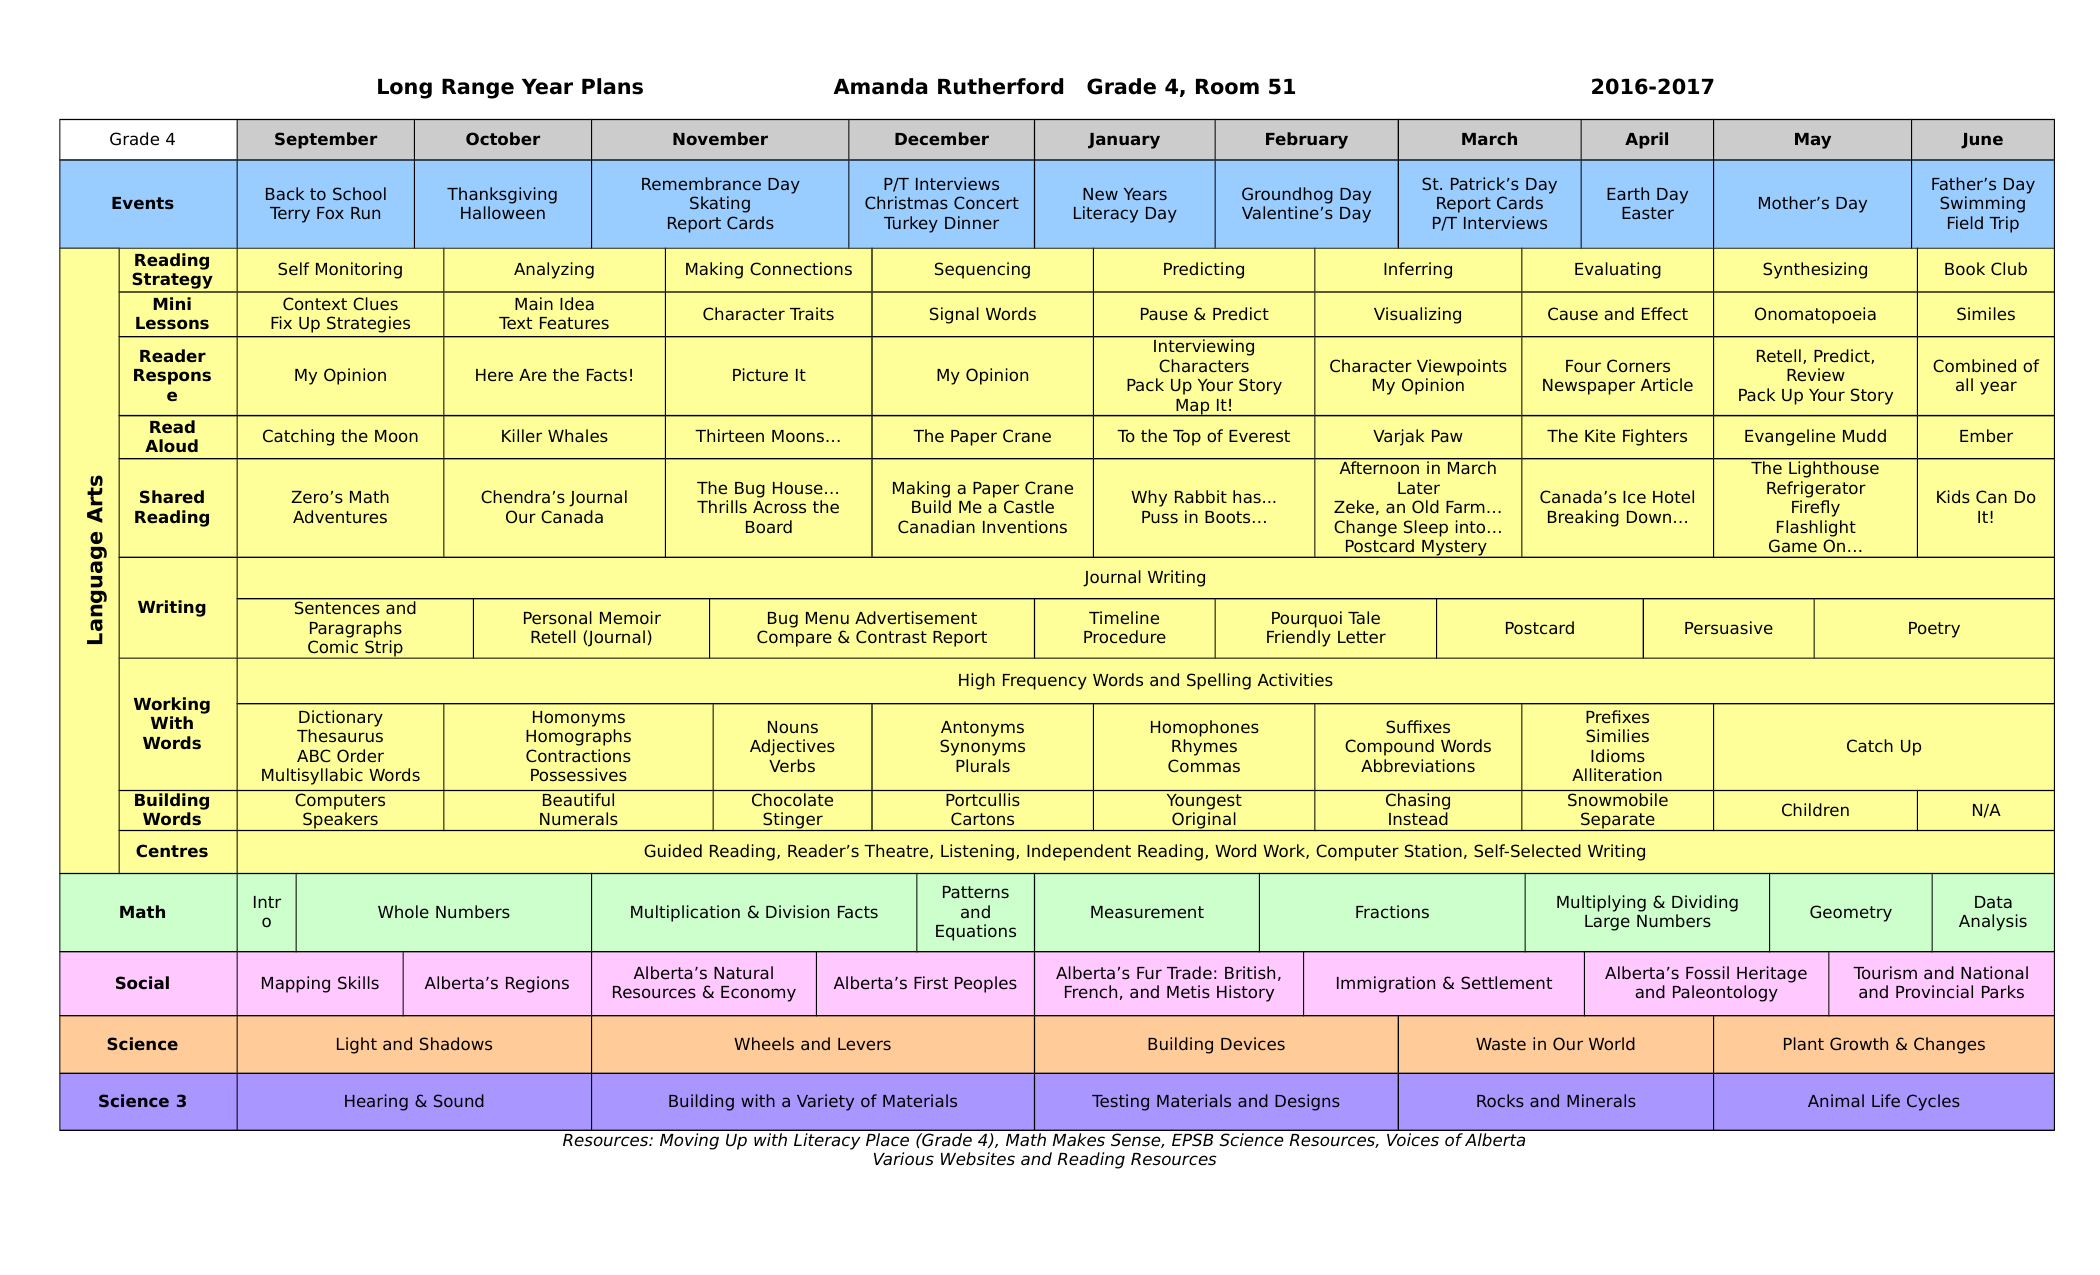 1 3 5 year plan template - browse our grade 4 social studies resources ninja plans